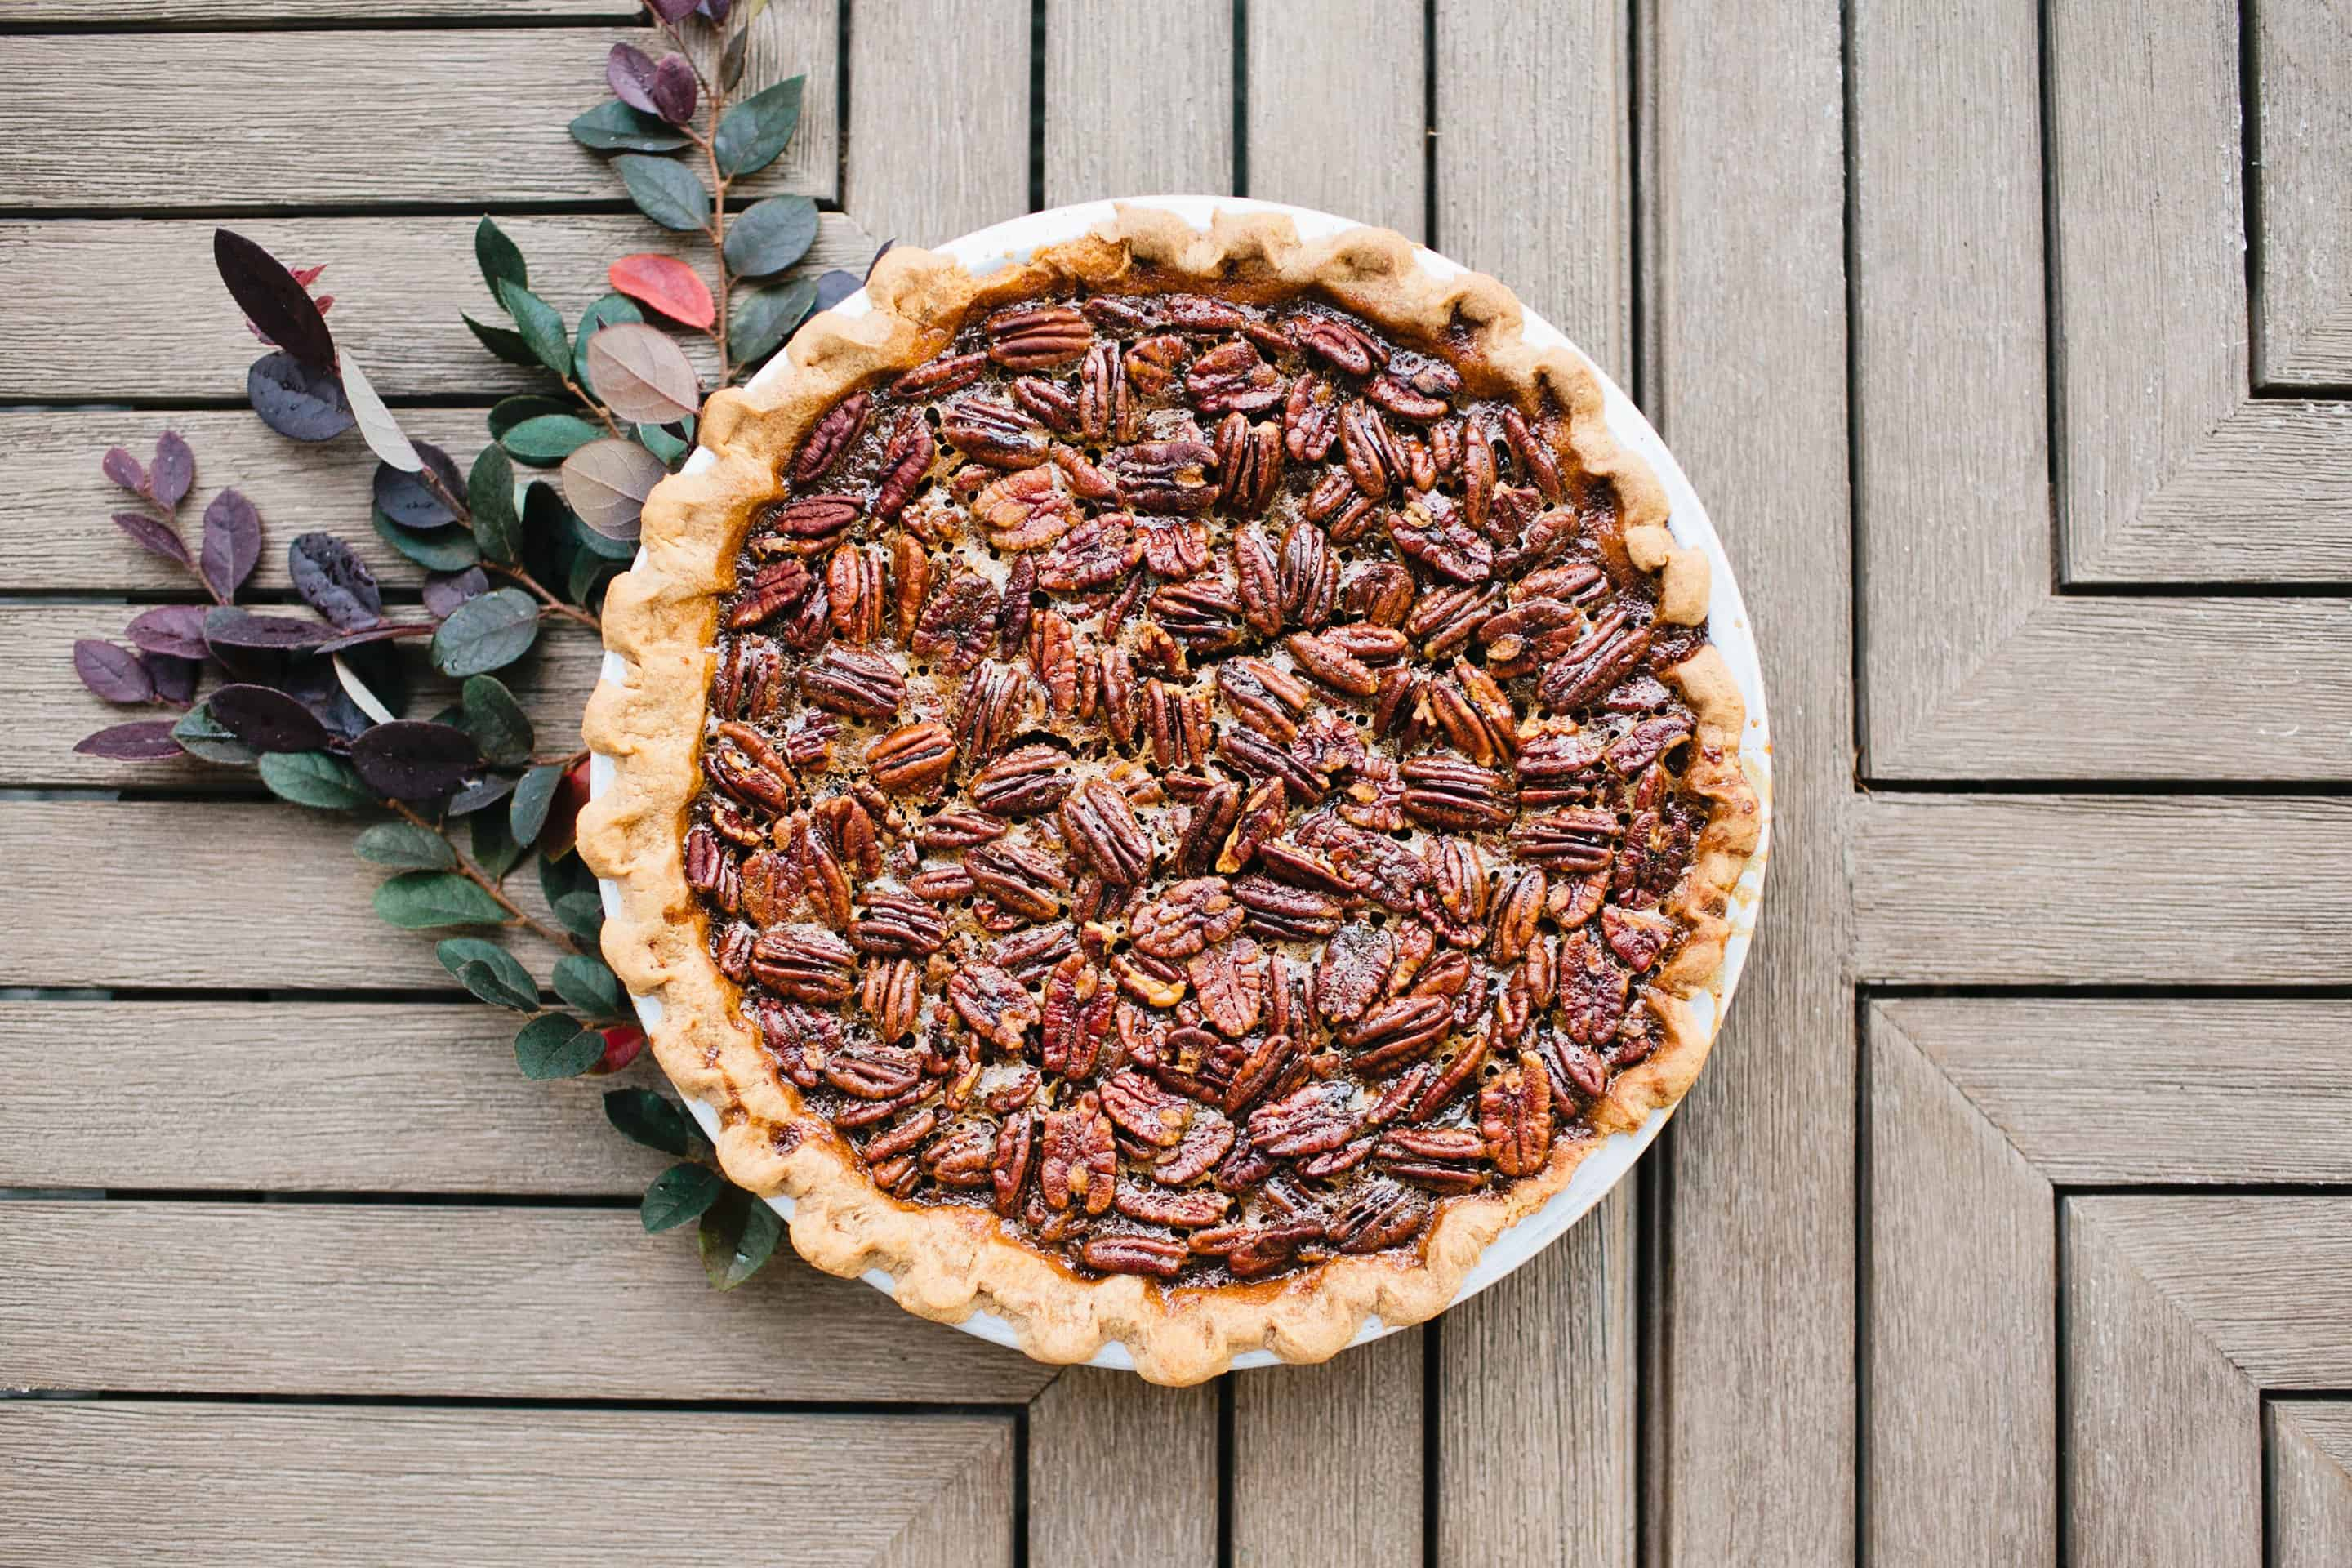 Pie in the Face by Tiffani Thiessen • Photos by Megan Welker